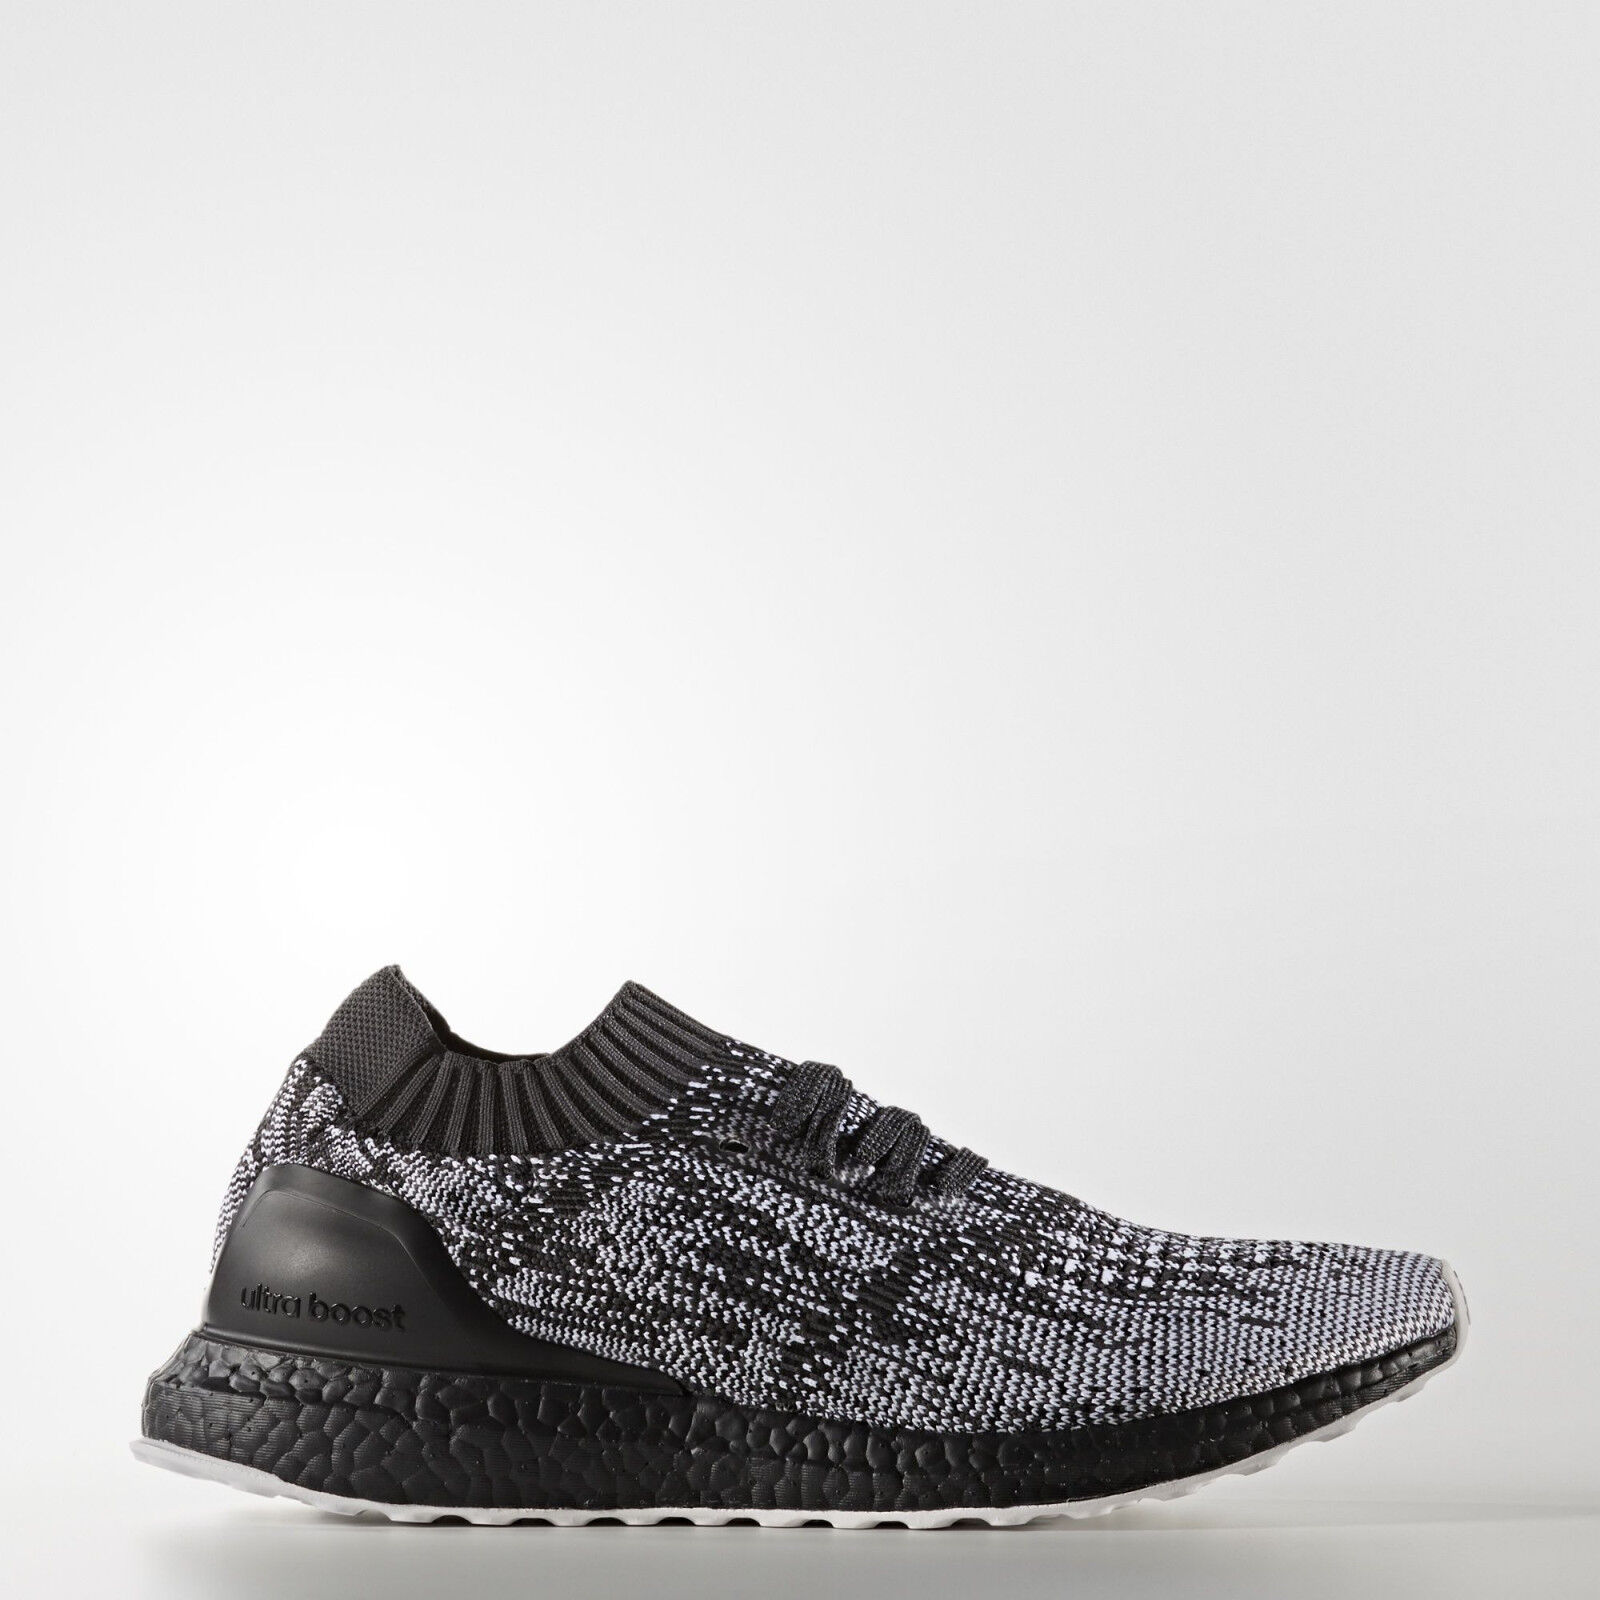 adidas UltraBOOST Uncaged noir fonctionnement chaussures Oreo S80698 Ultra Boost